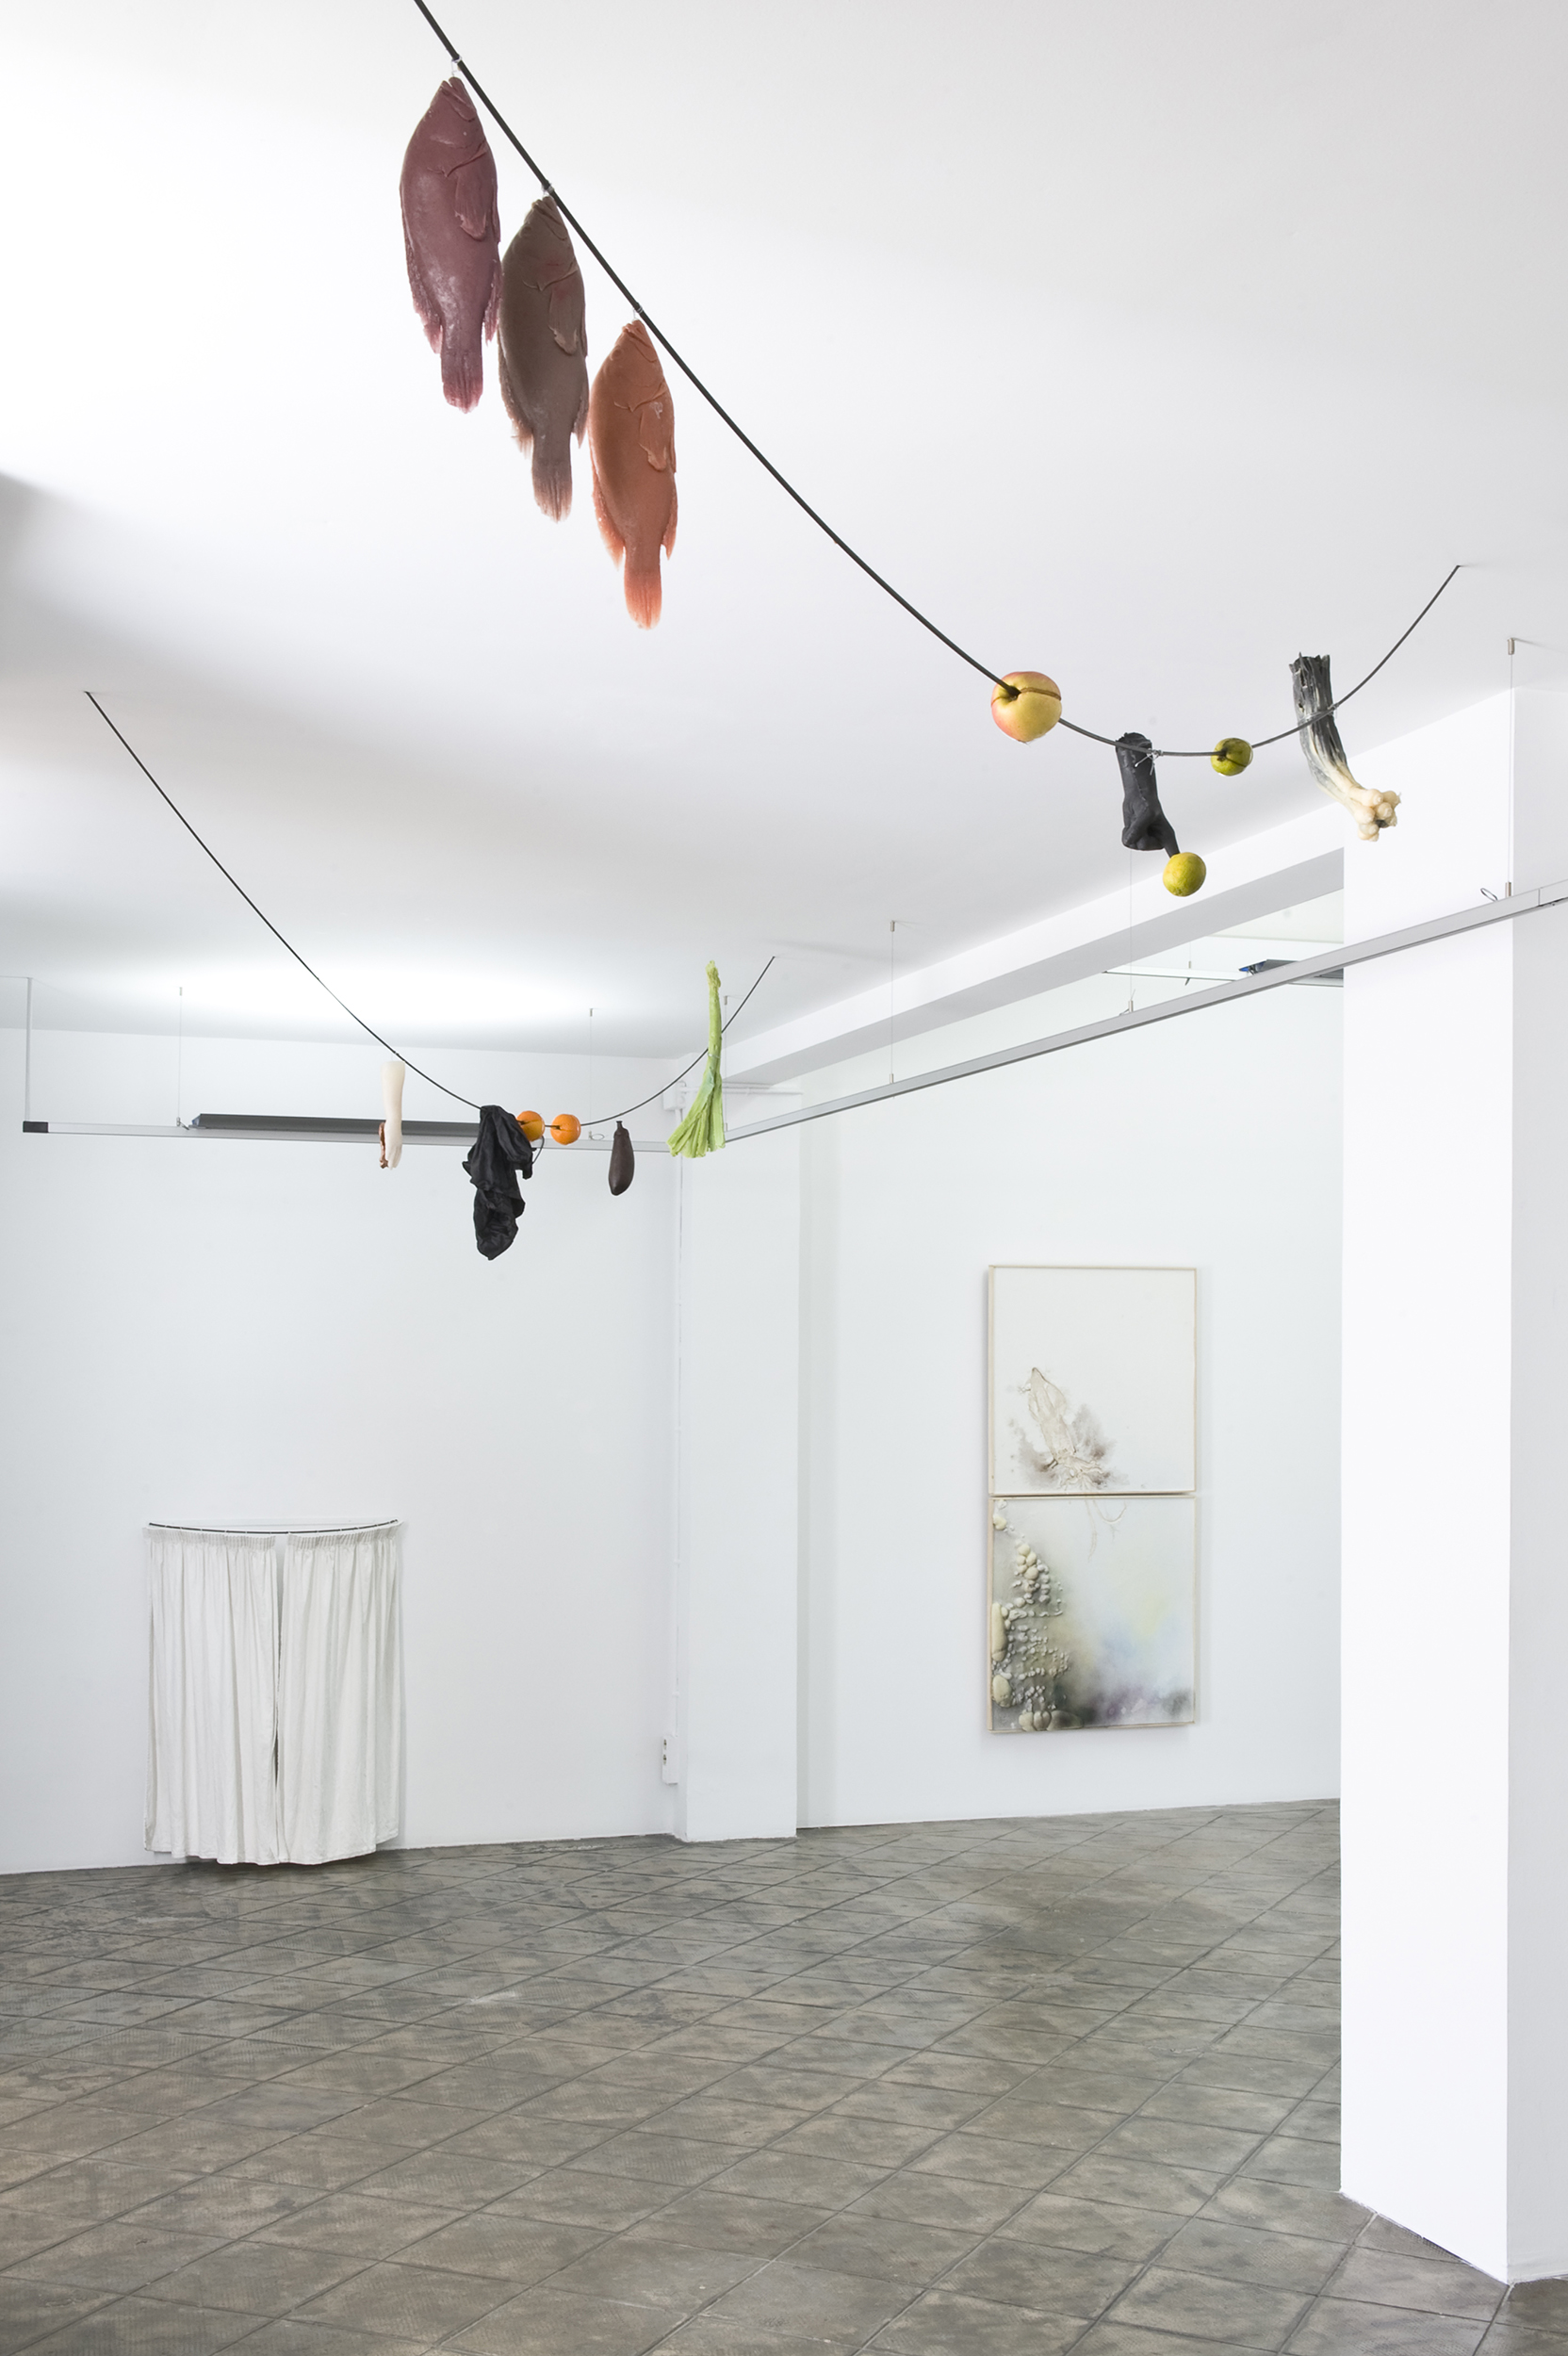 Installation view: The Constant Repetition of False,ProjecteSD, Barcelona, 2013 |  | ProjecteSD